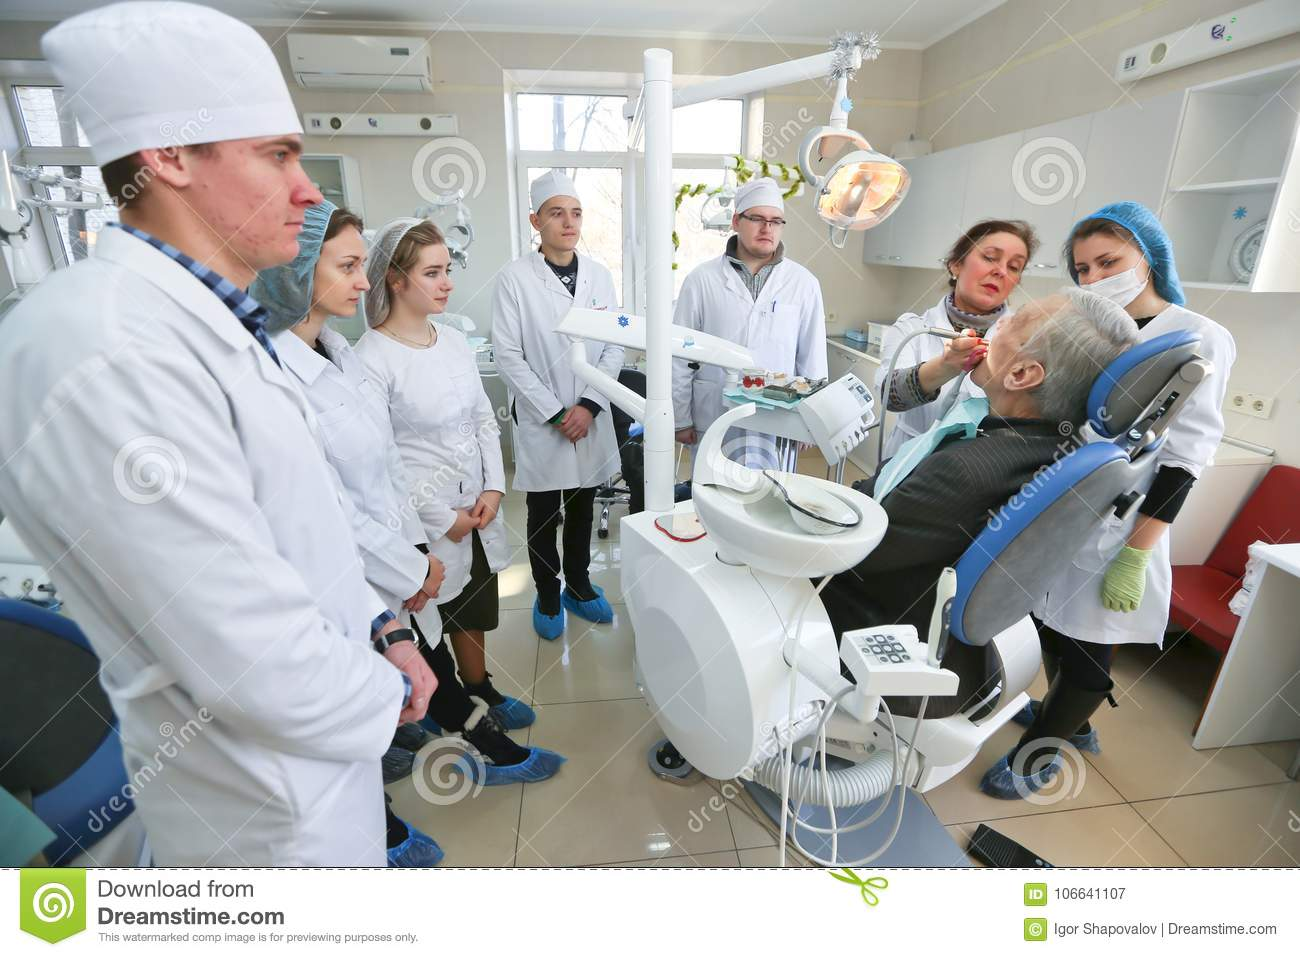 Students Practicing Dentistry On Medical Dummies In A